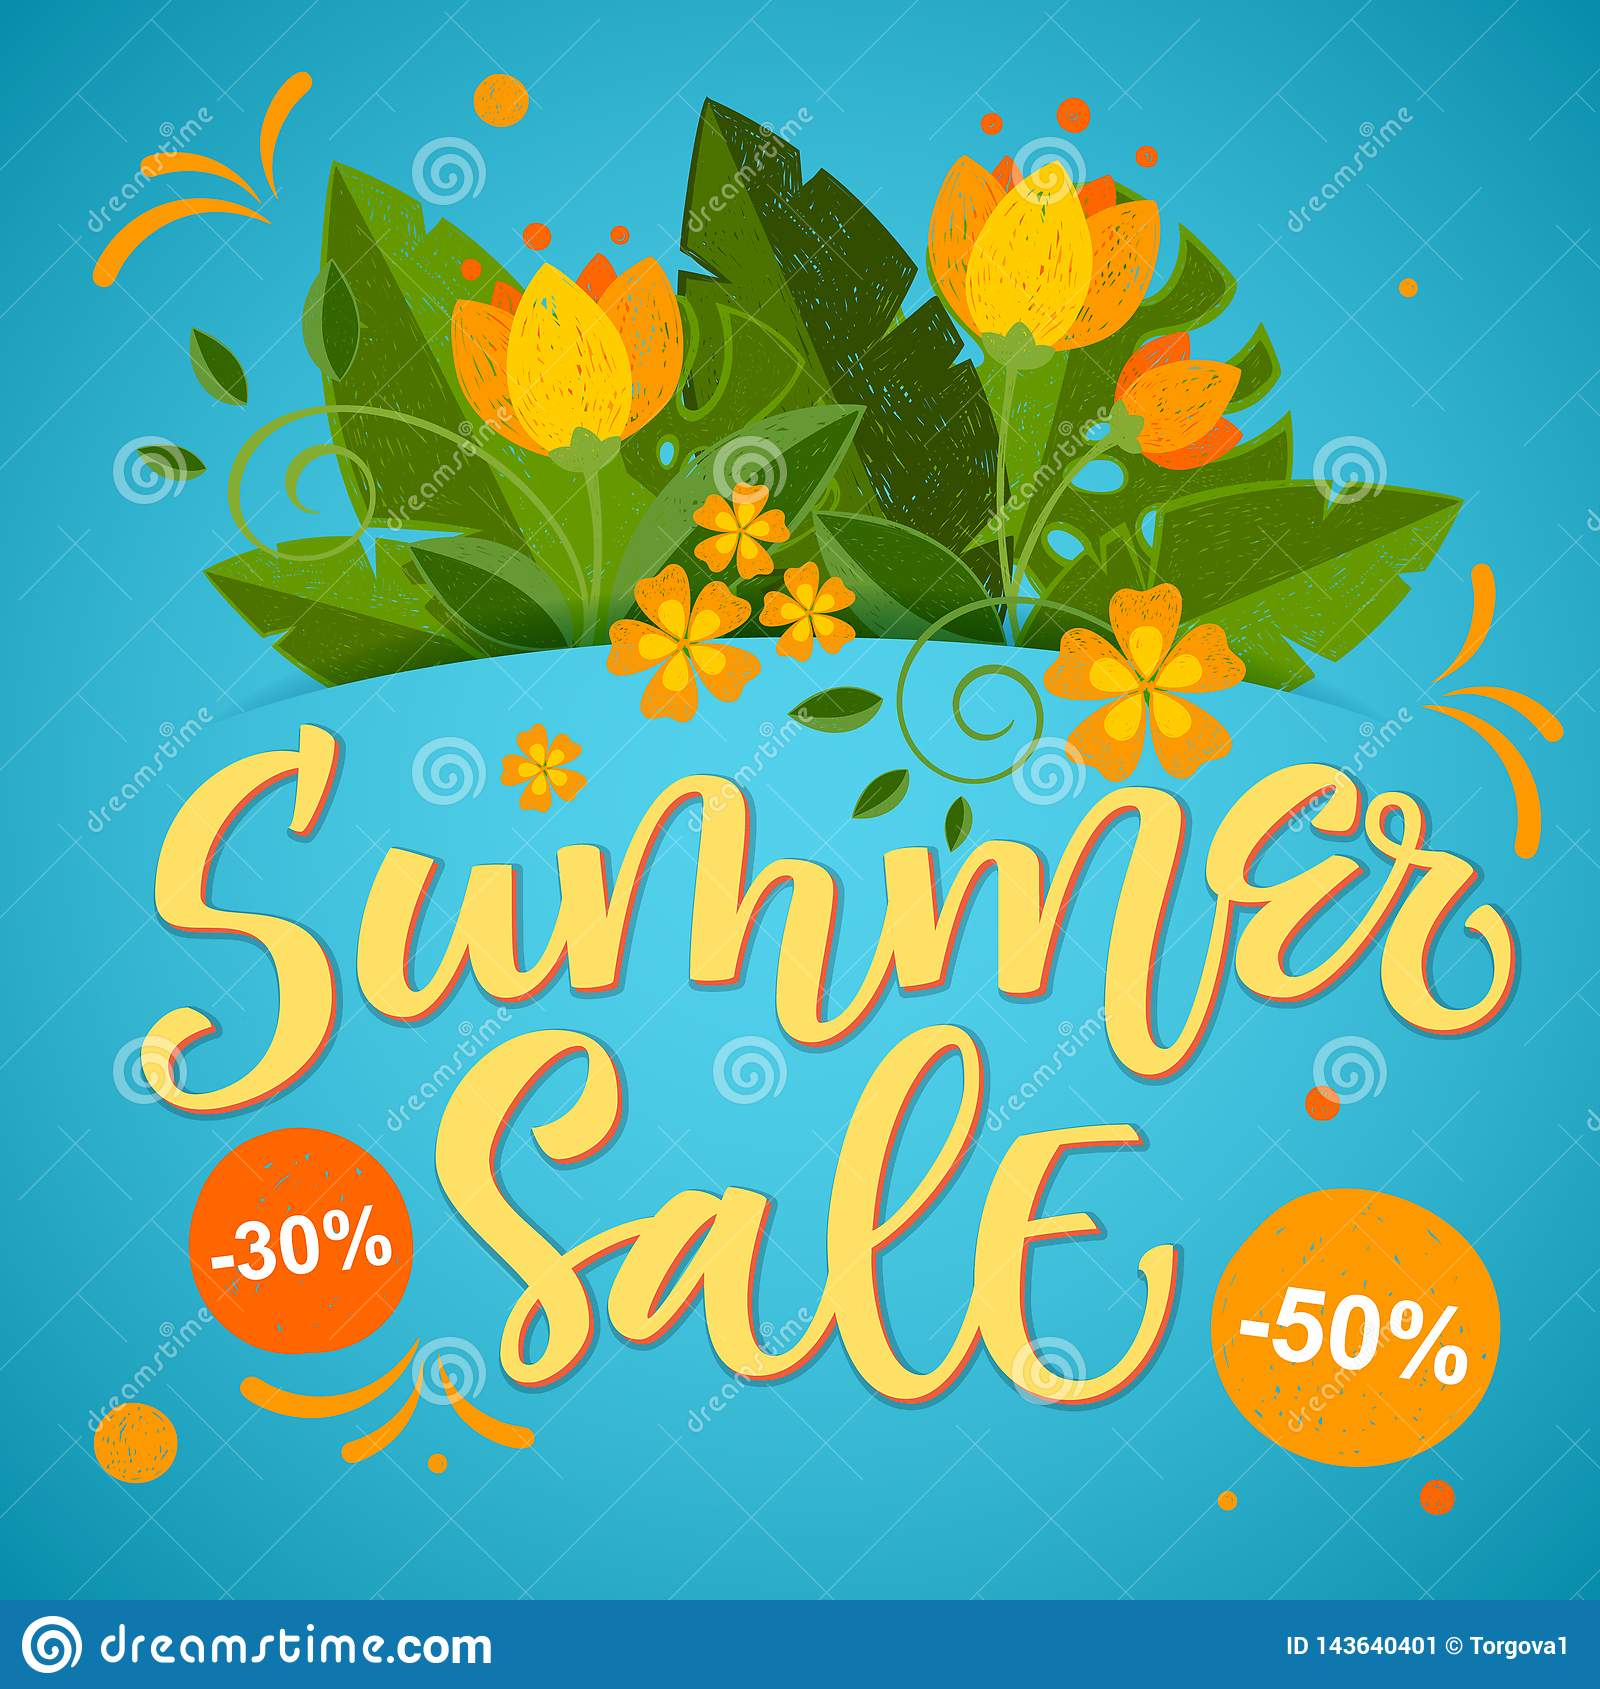 Summer Sale - calligraphy bright colorful design with floral elements